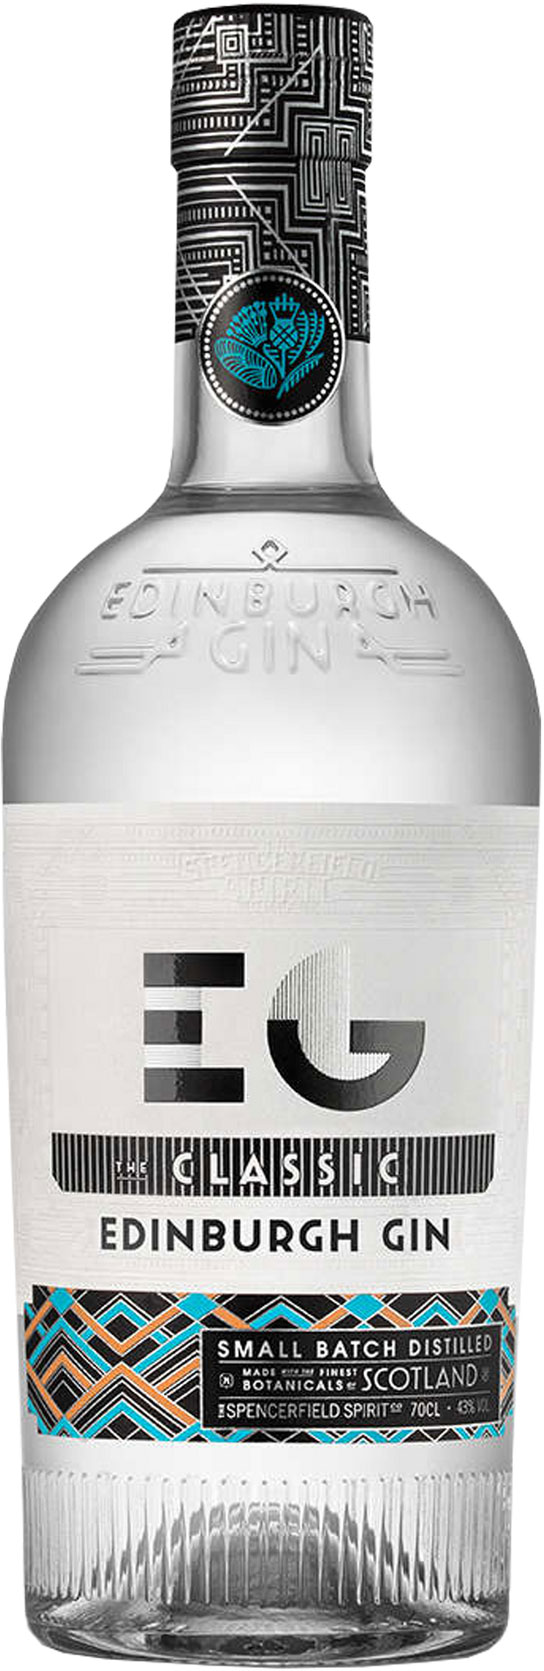 Edinburgh Gin 70cl Bottle